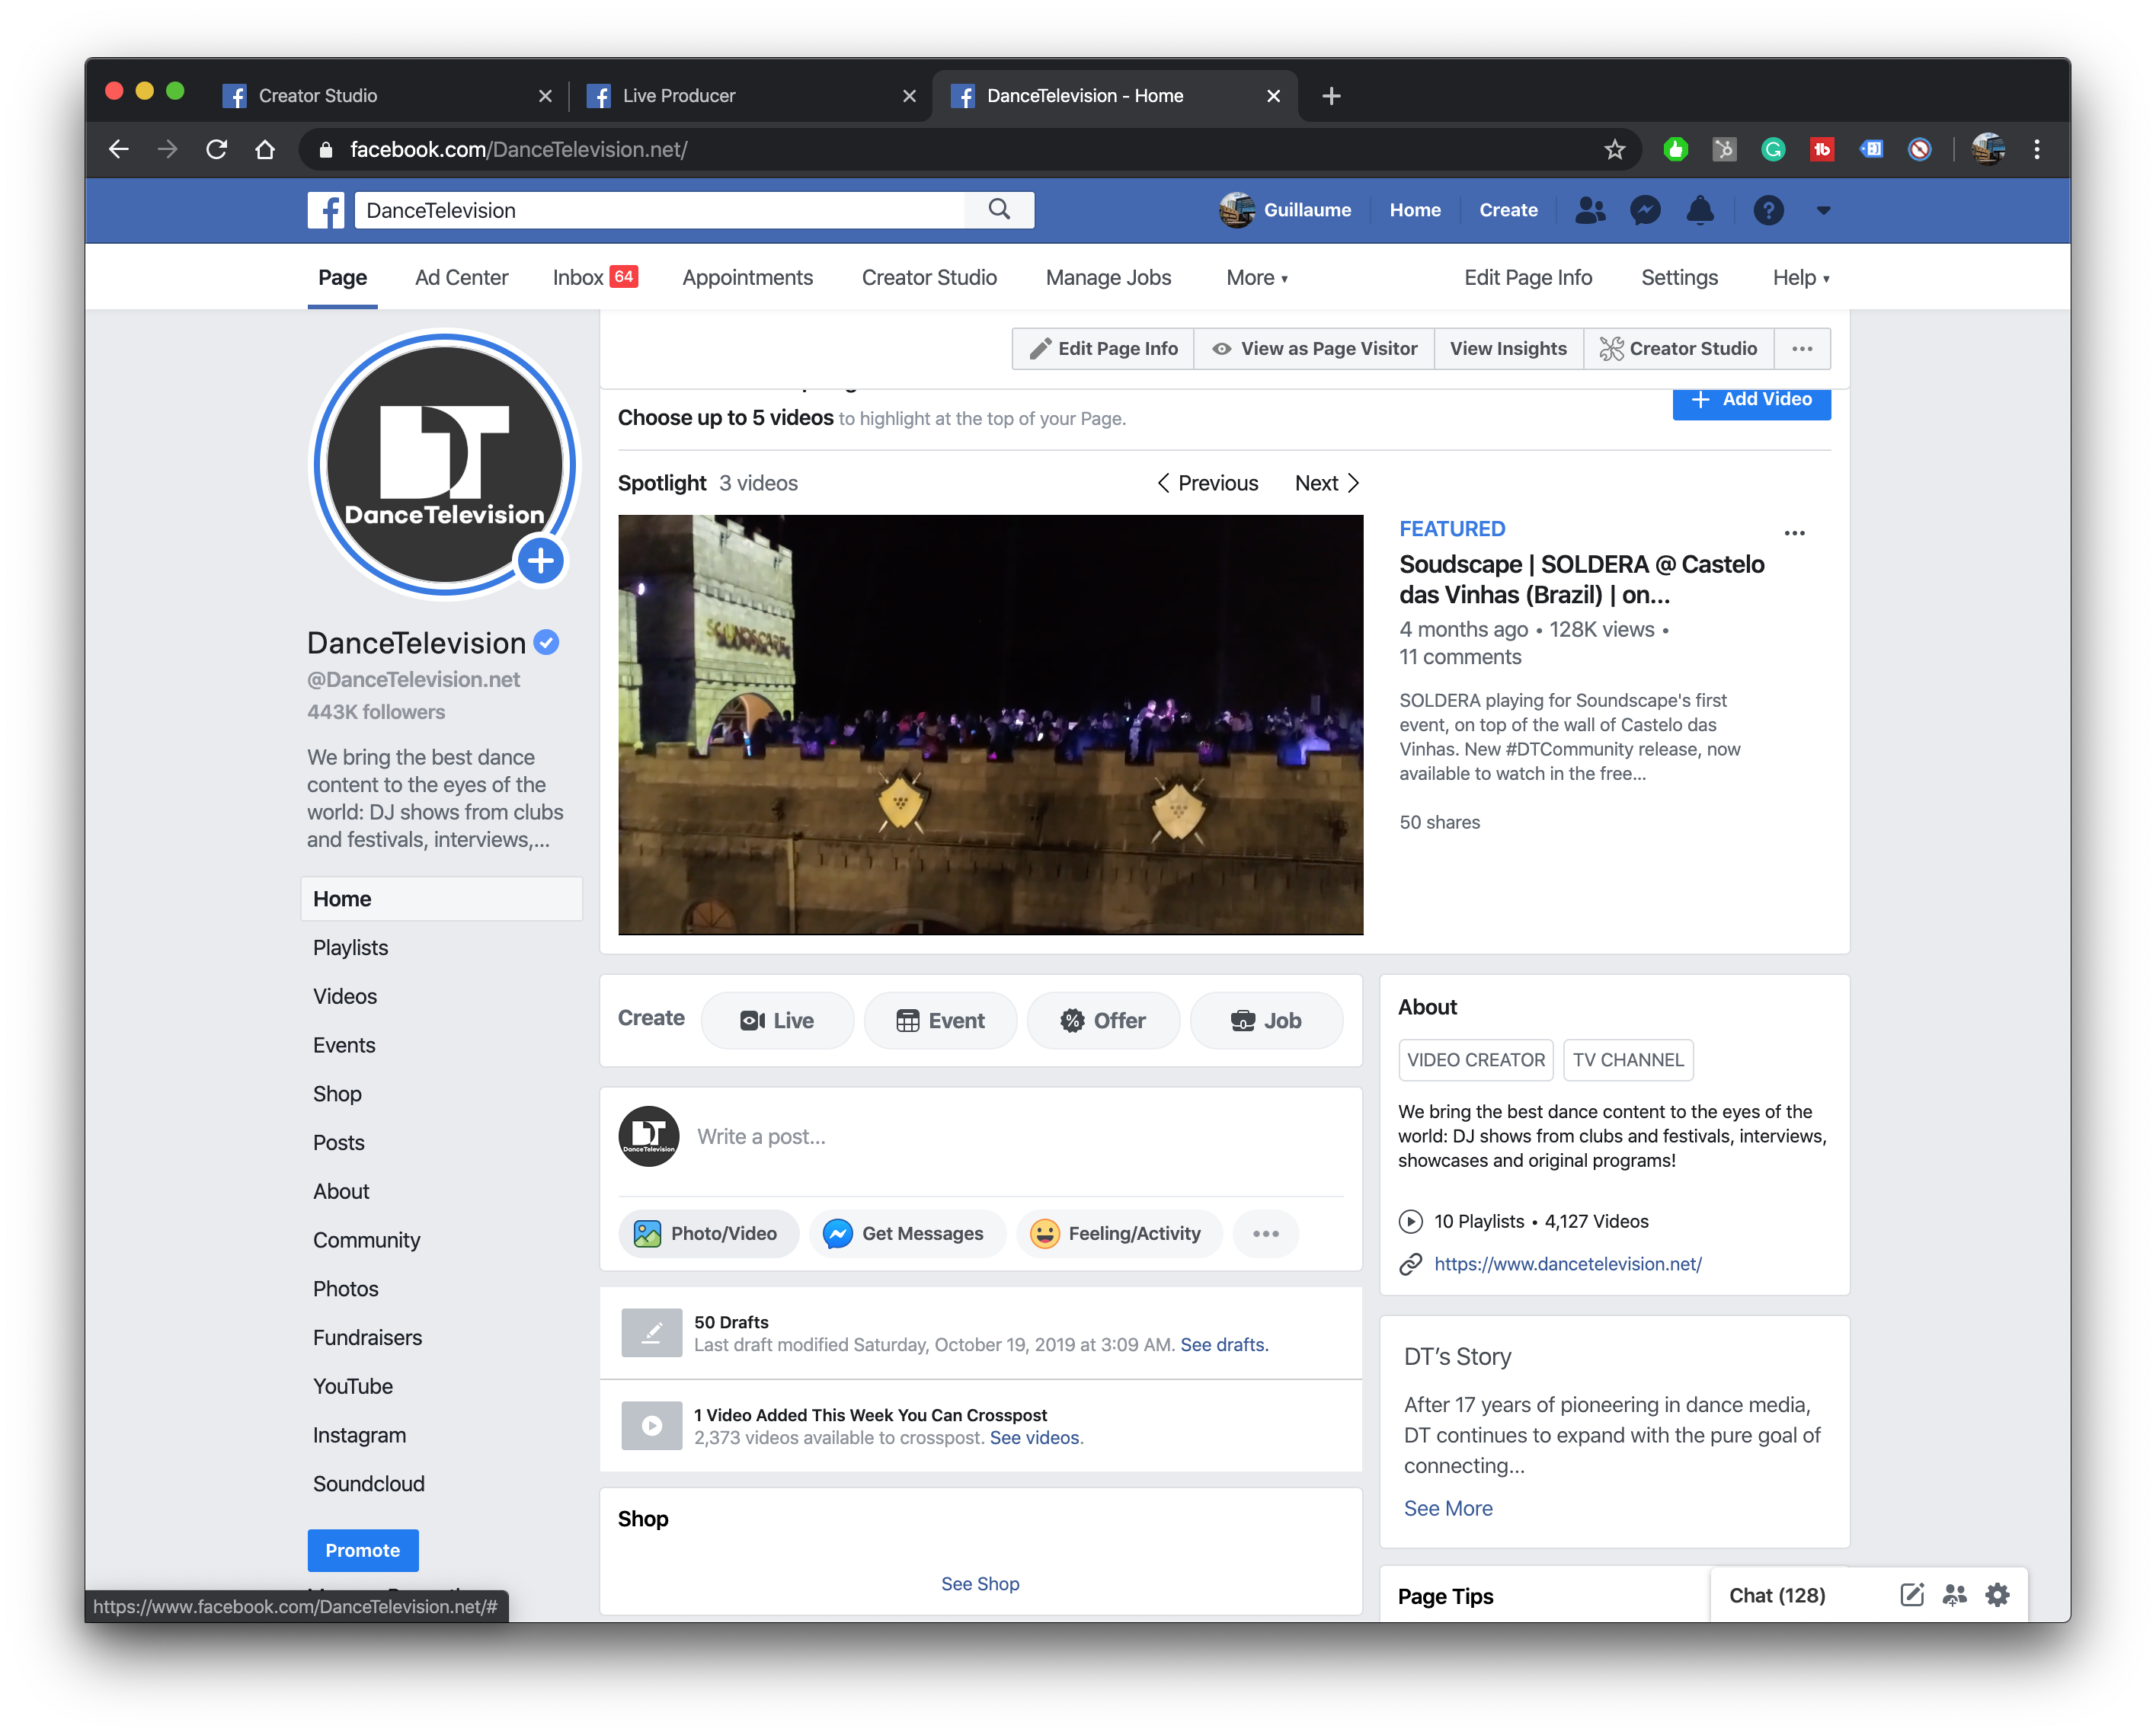 Premiere video from your Facebook Page wall